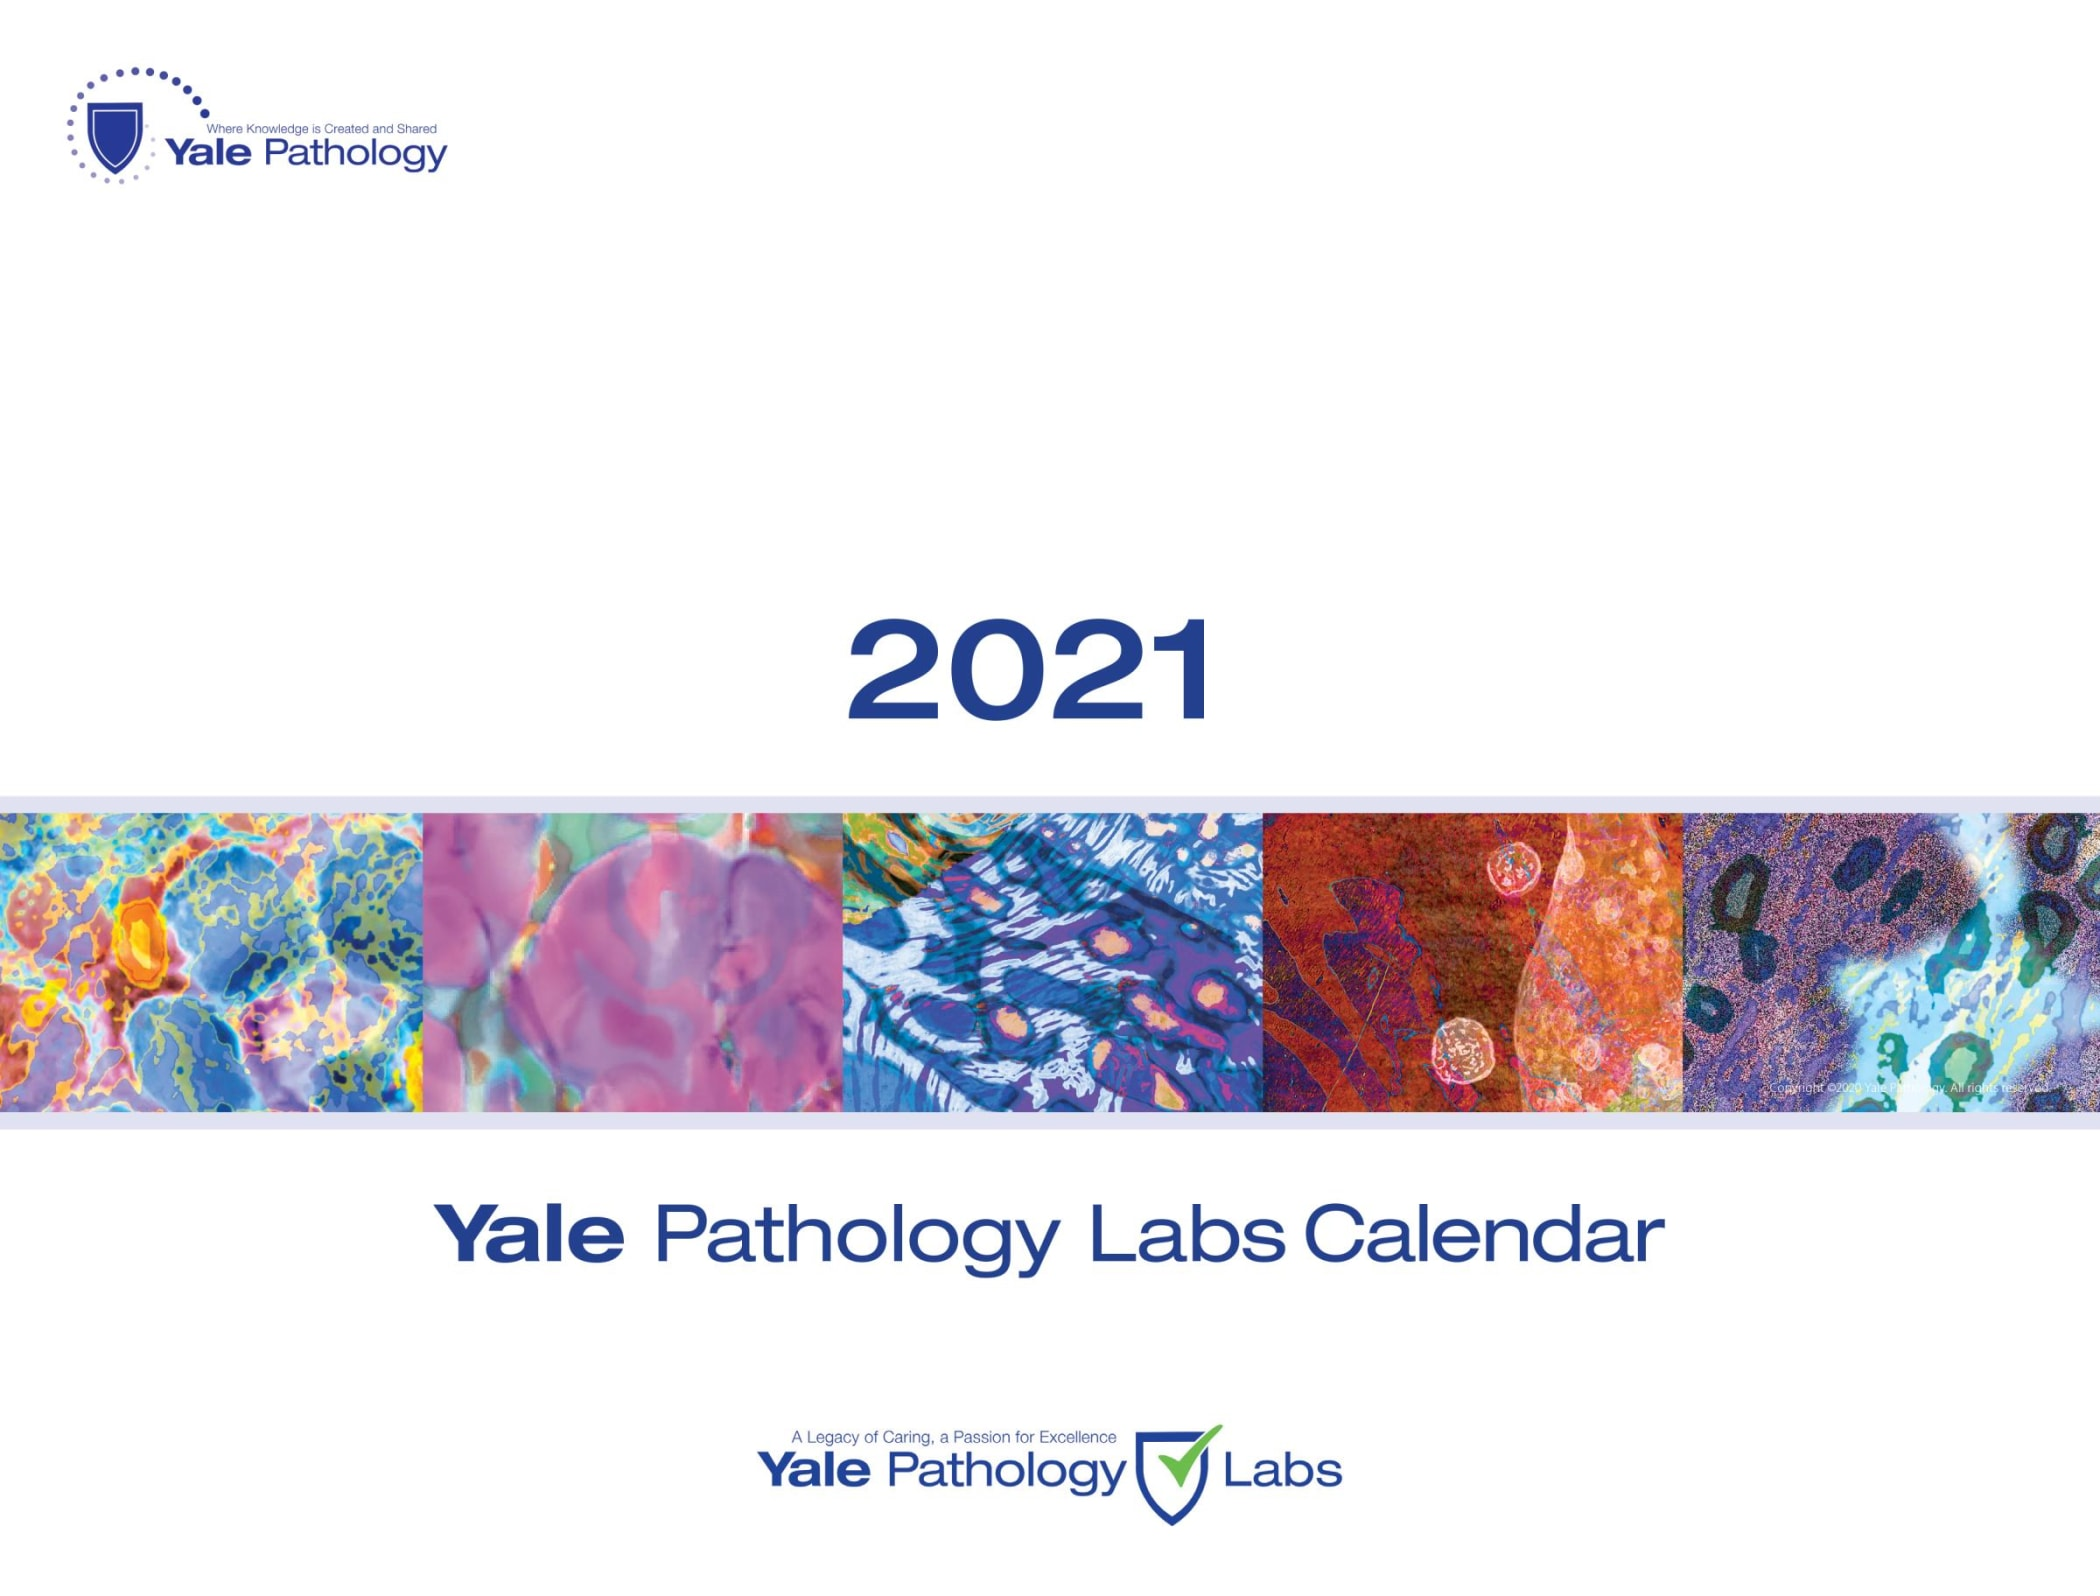 Yale Pathology Labs Calendar 2021 - Front Cover